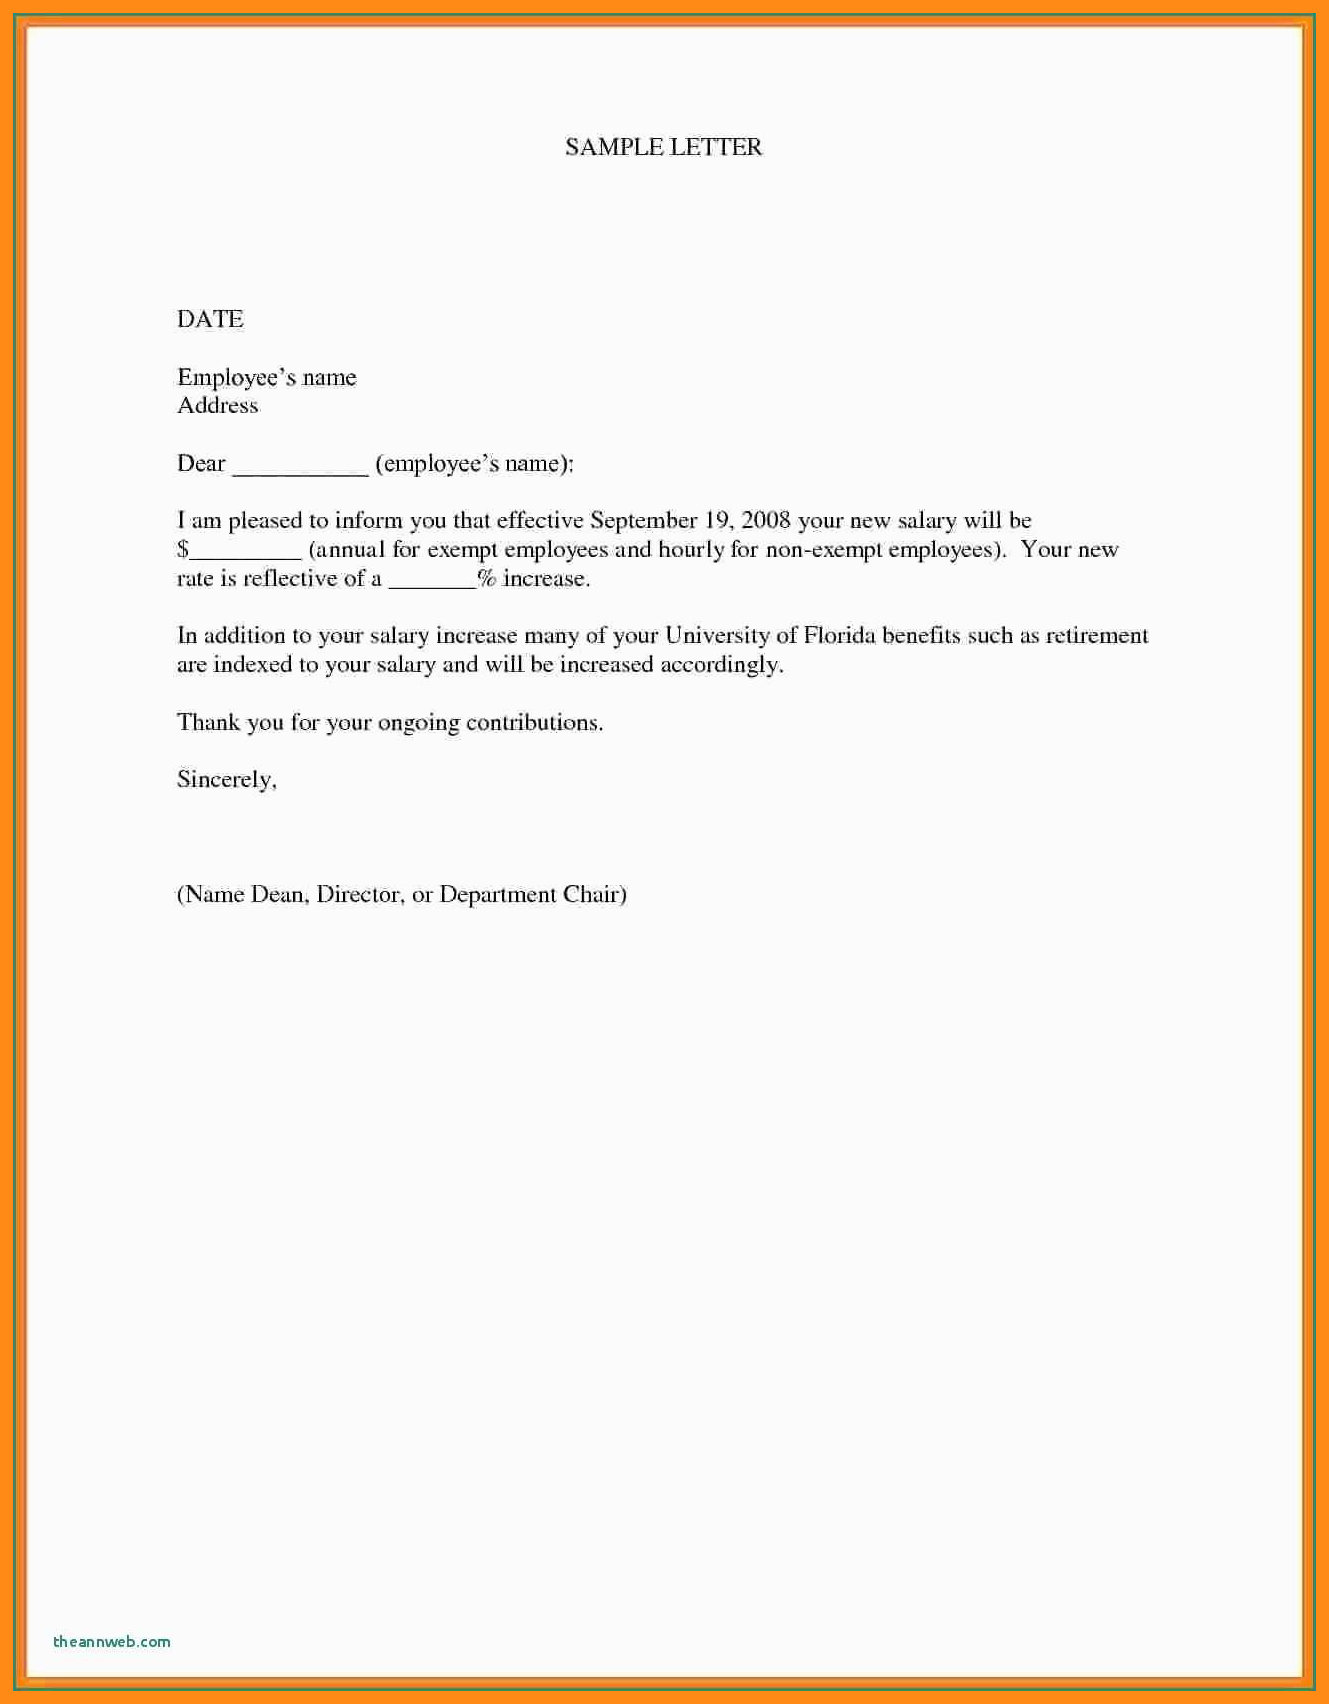 Salary Increase Request Letters  Elainegalindo Throughout Request For Raise Letter Template